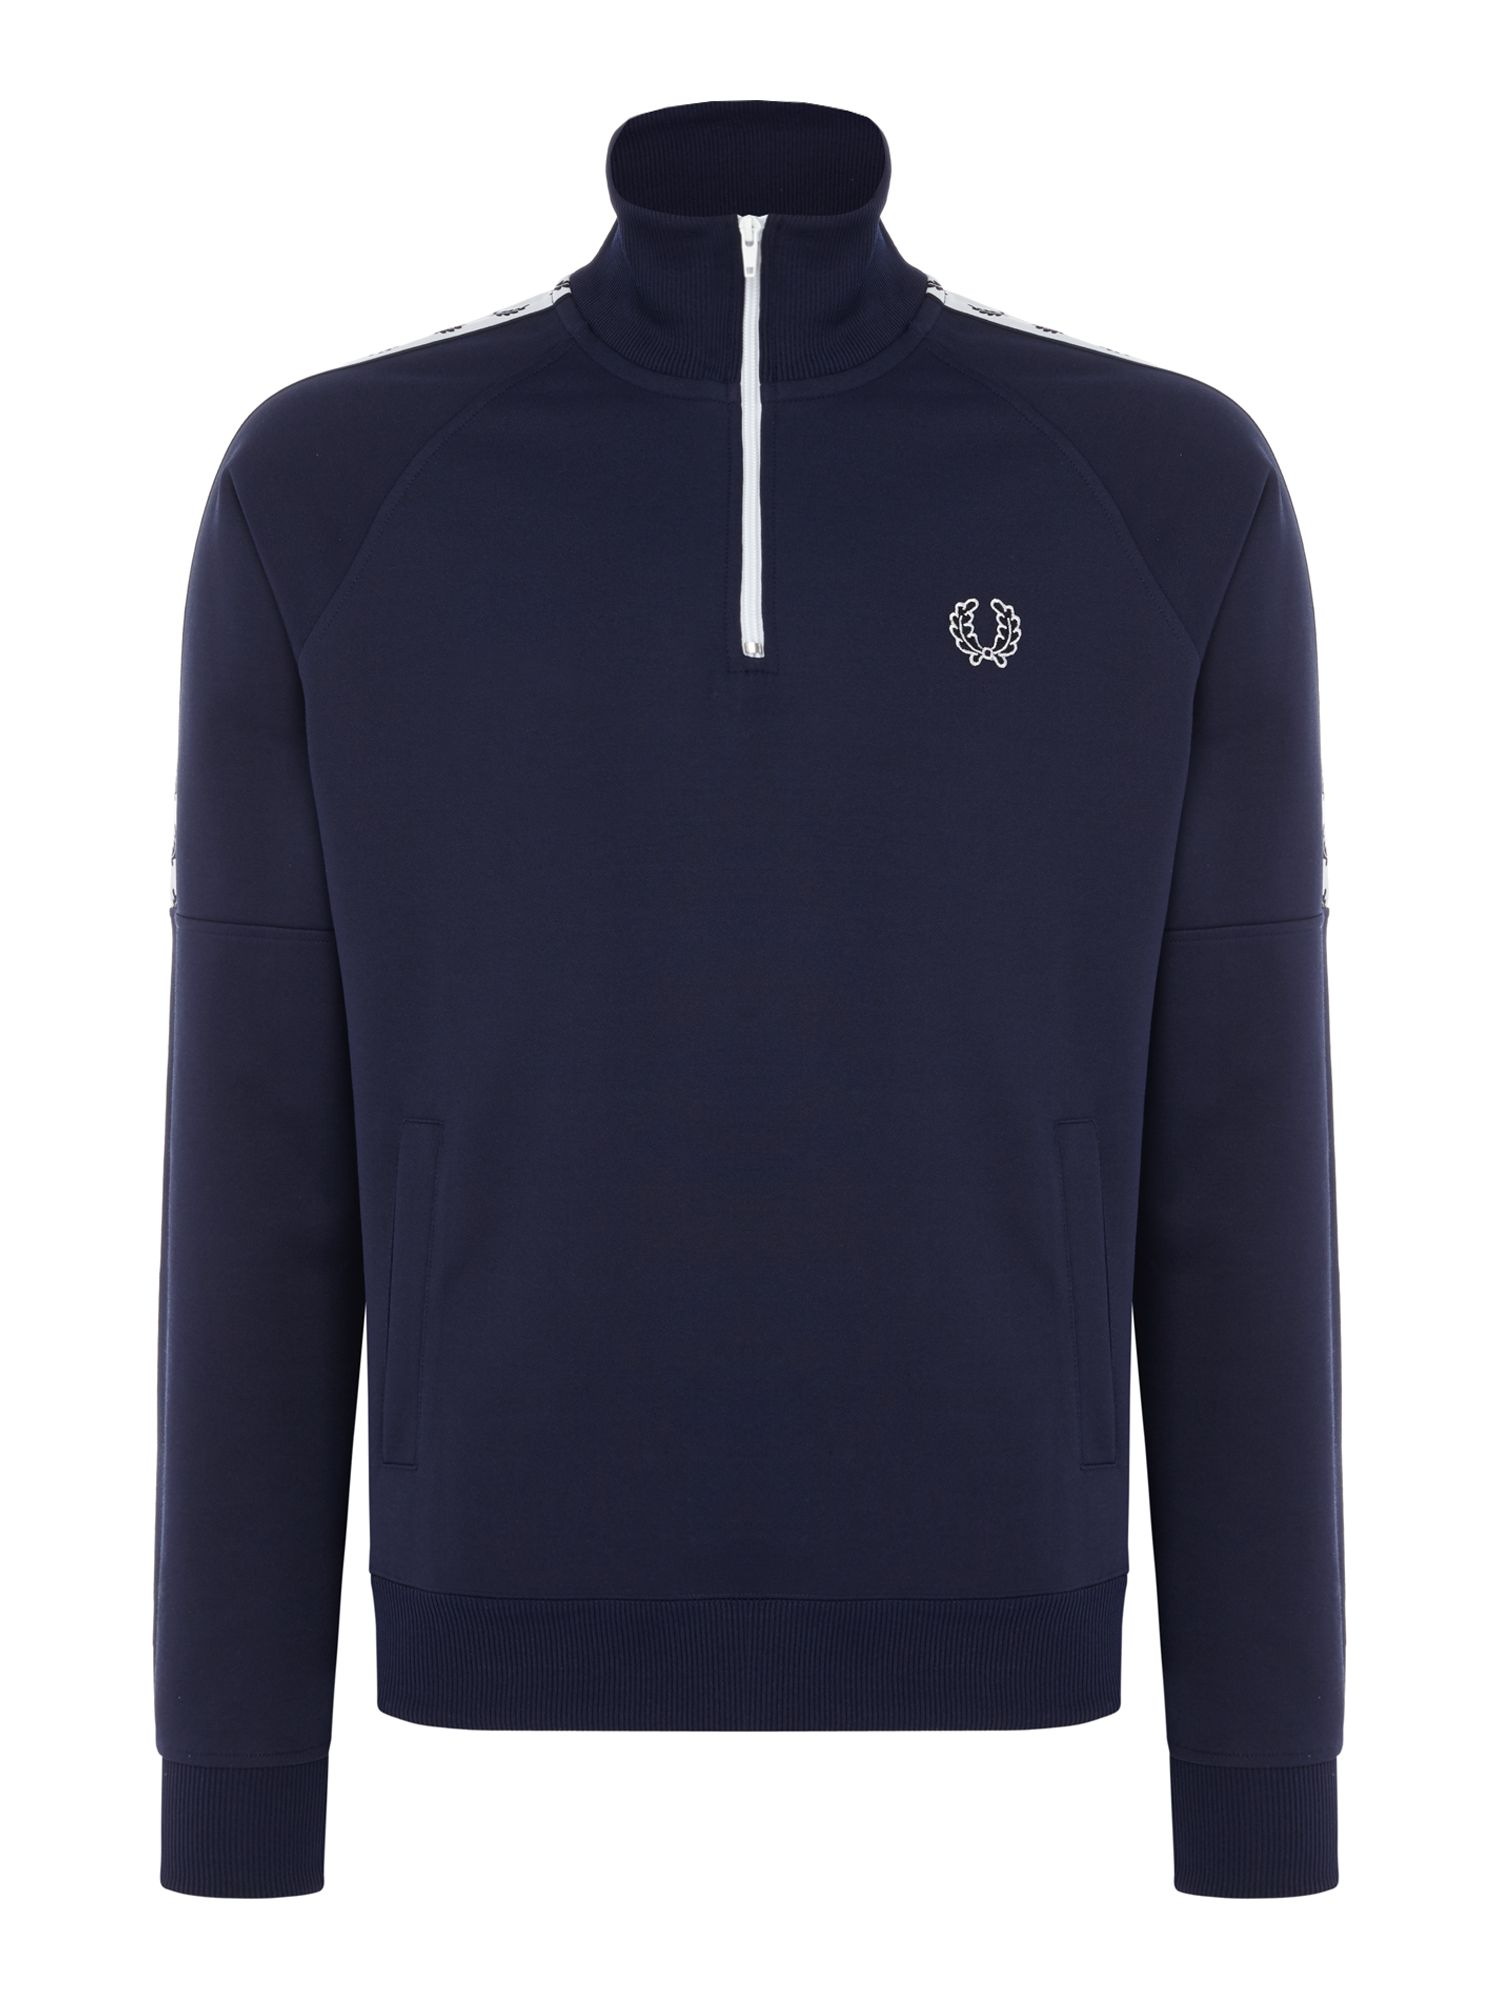 Men's Fred Perry Laurel wreath tape half zip sweat, Blue